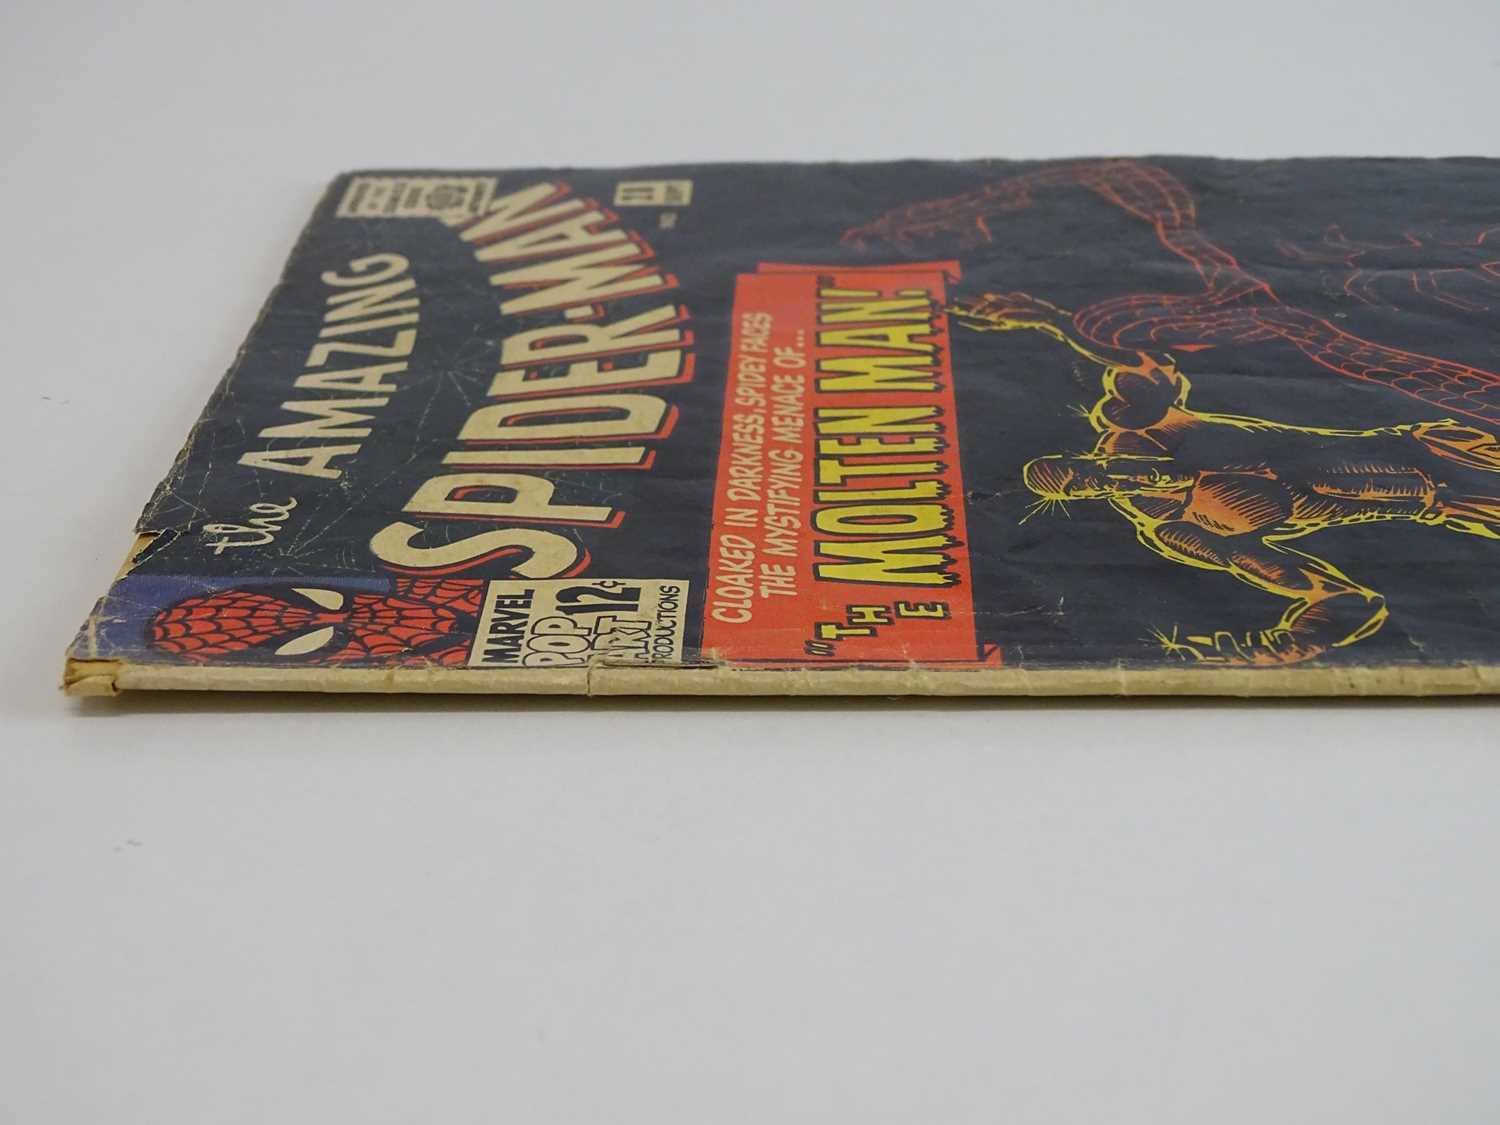 AMAZING SPIDER-MAN #28 - (1965 - MARVEL) - Origin and First appearance of Molten Man + Peter - Image 8 of 9